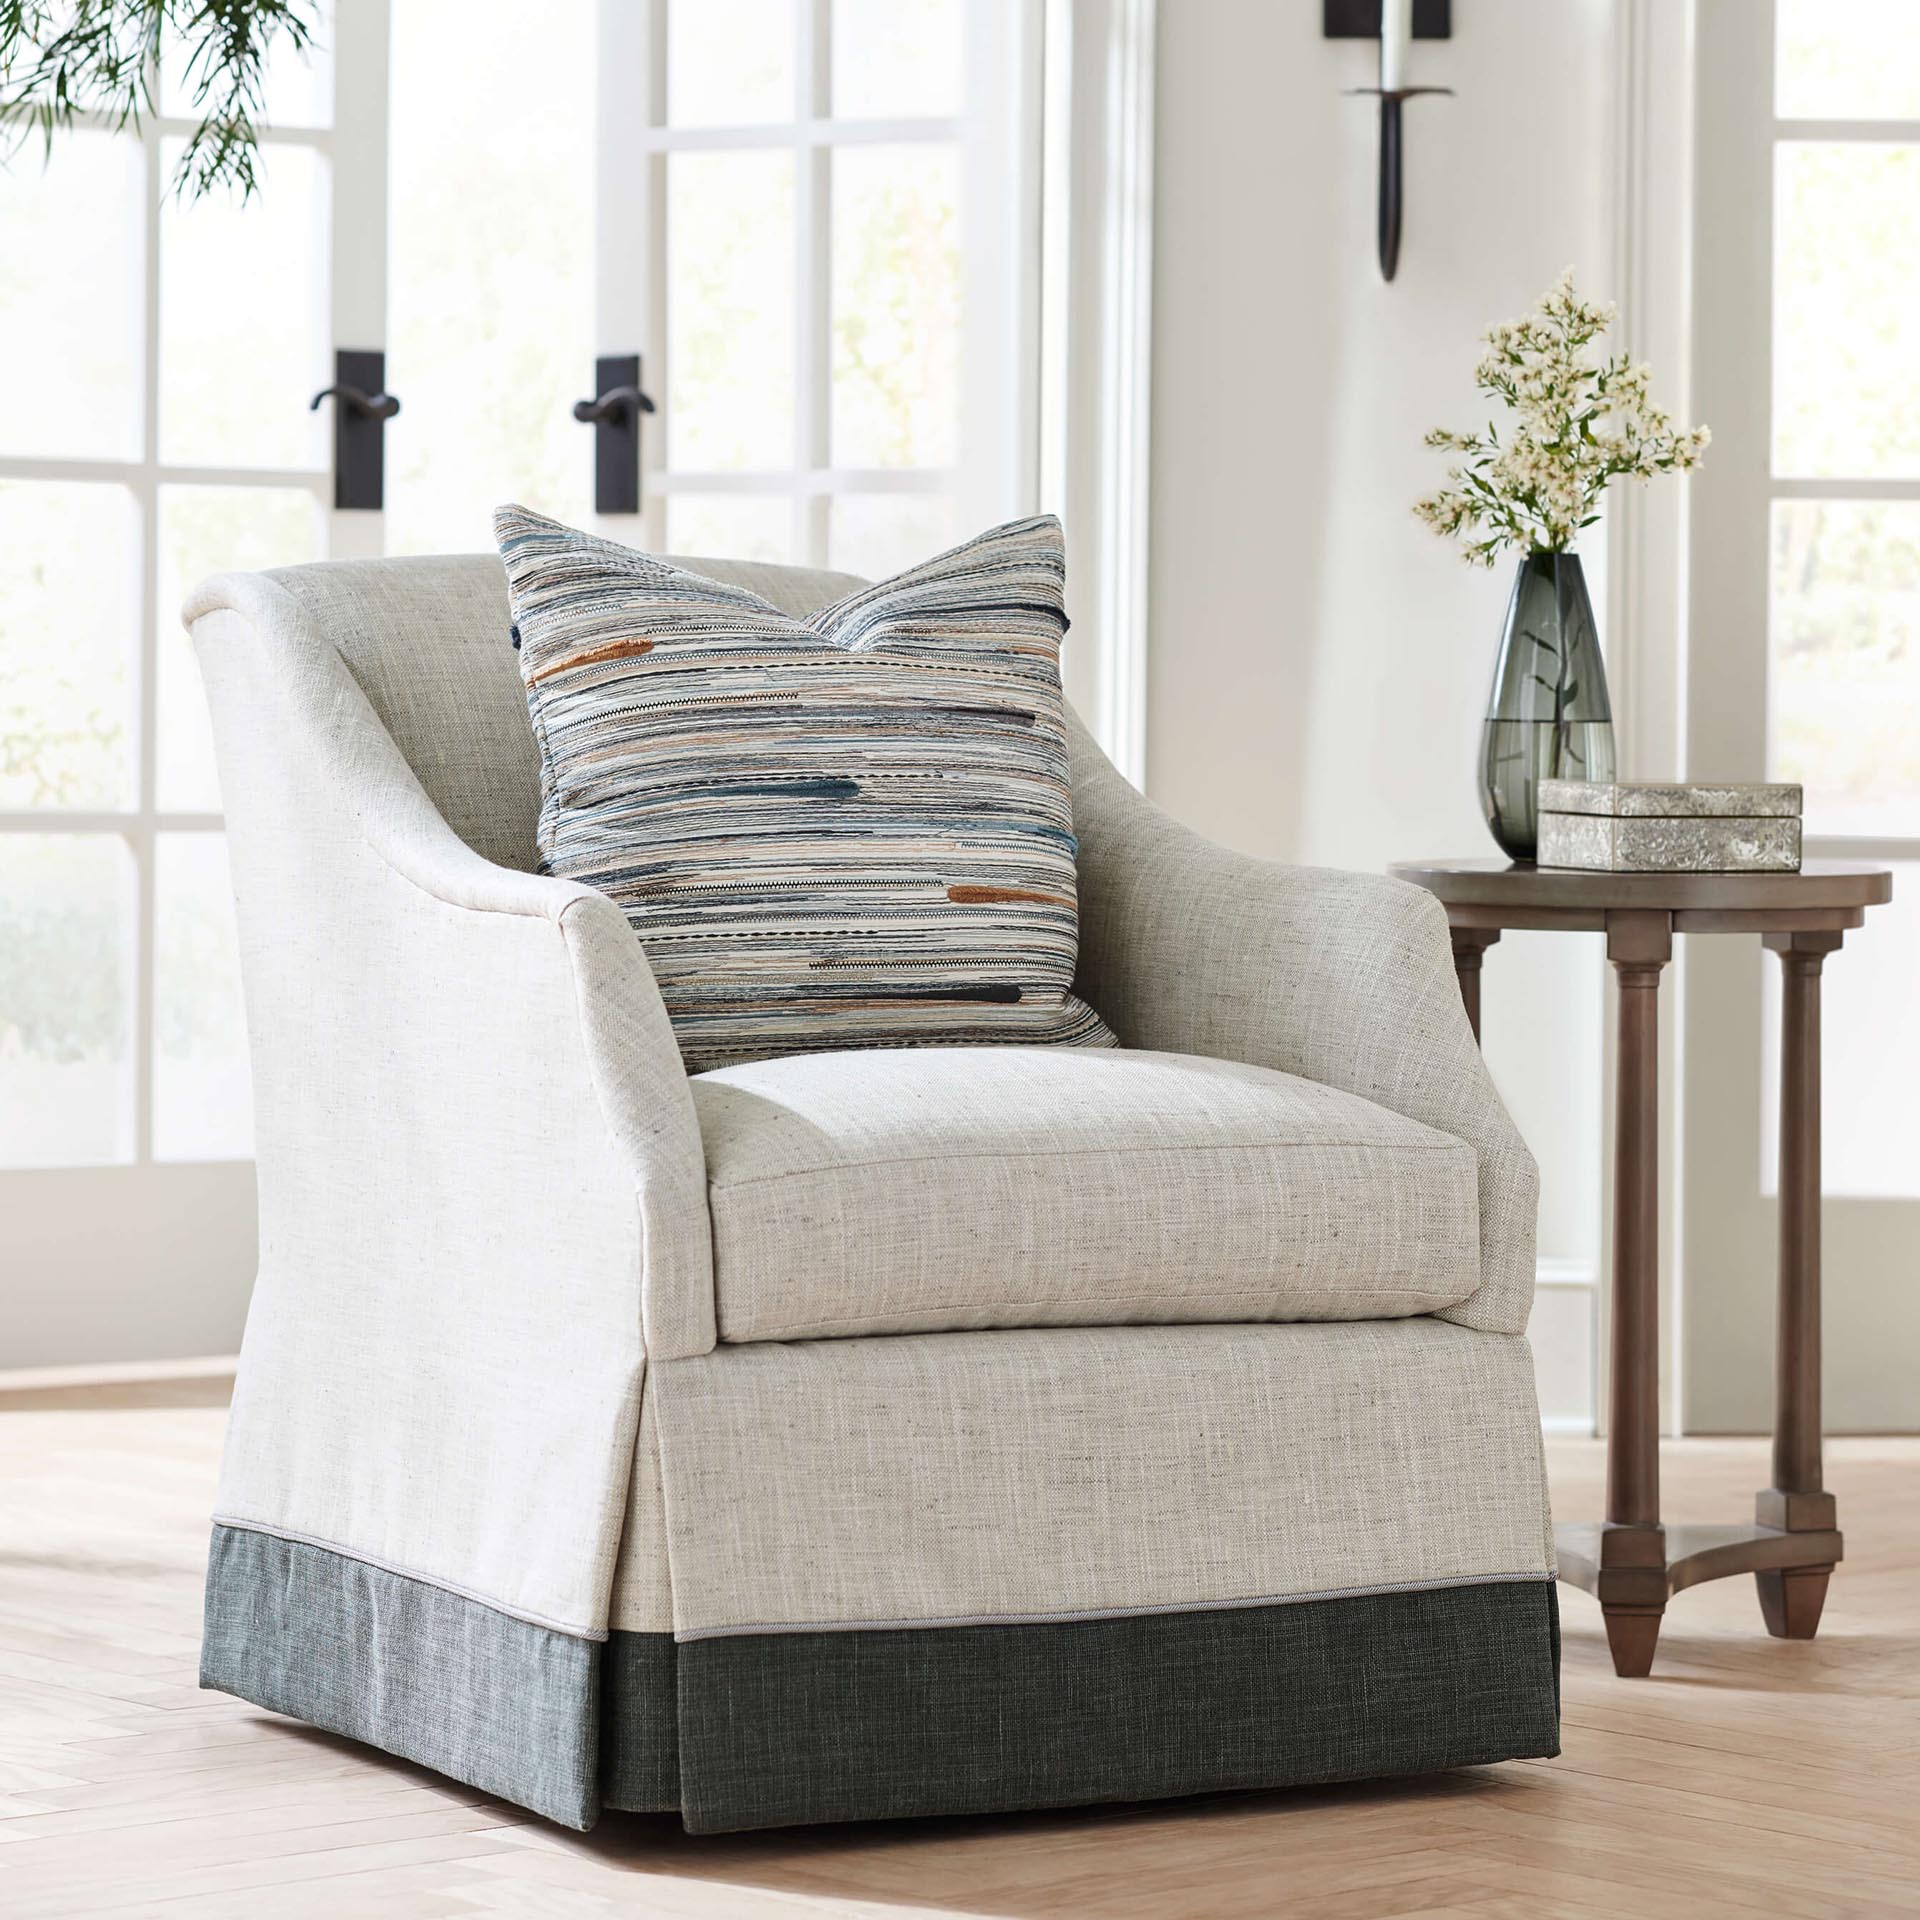 Cozy white accent chair